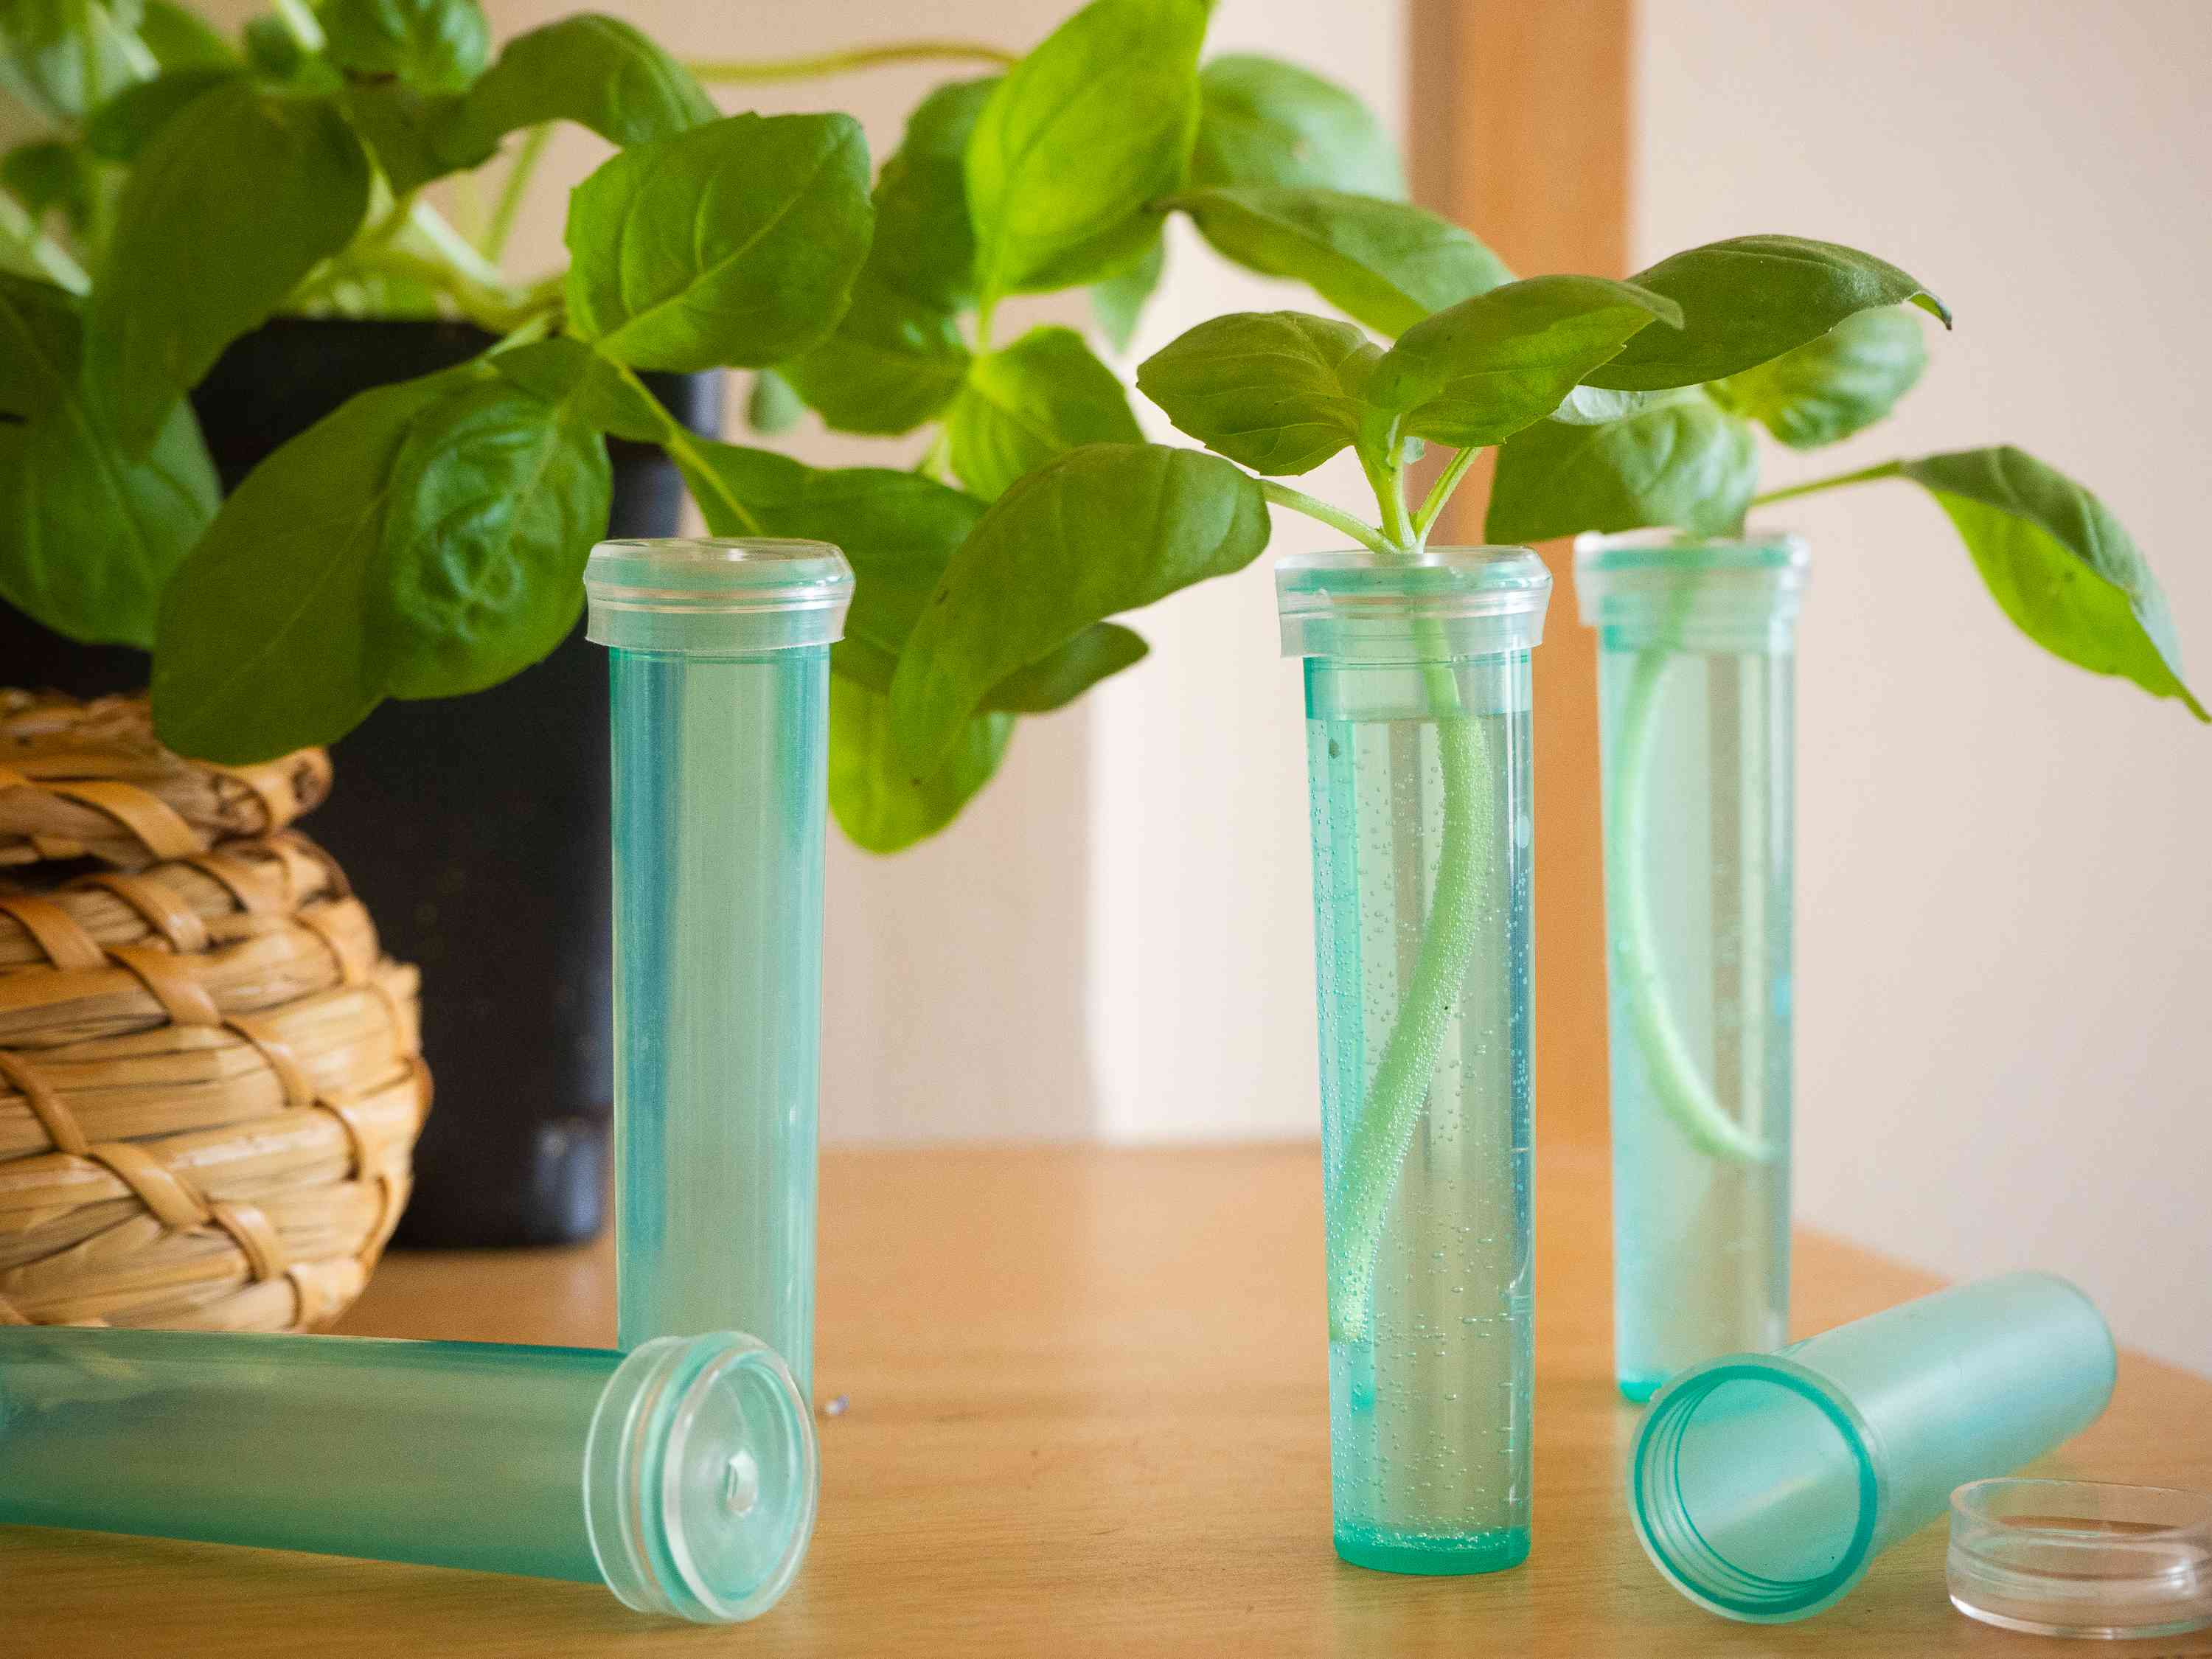 Basil garden plant cuttings in blue floral tubes with water closeup